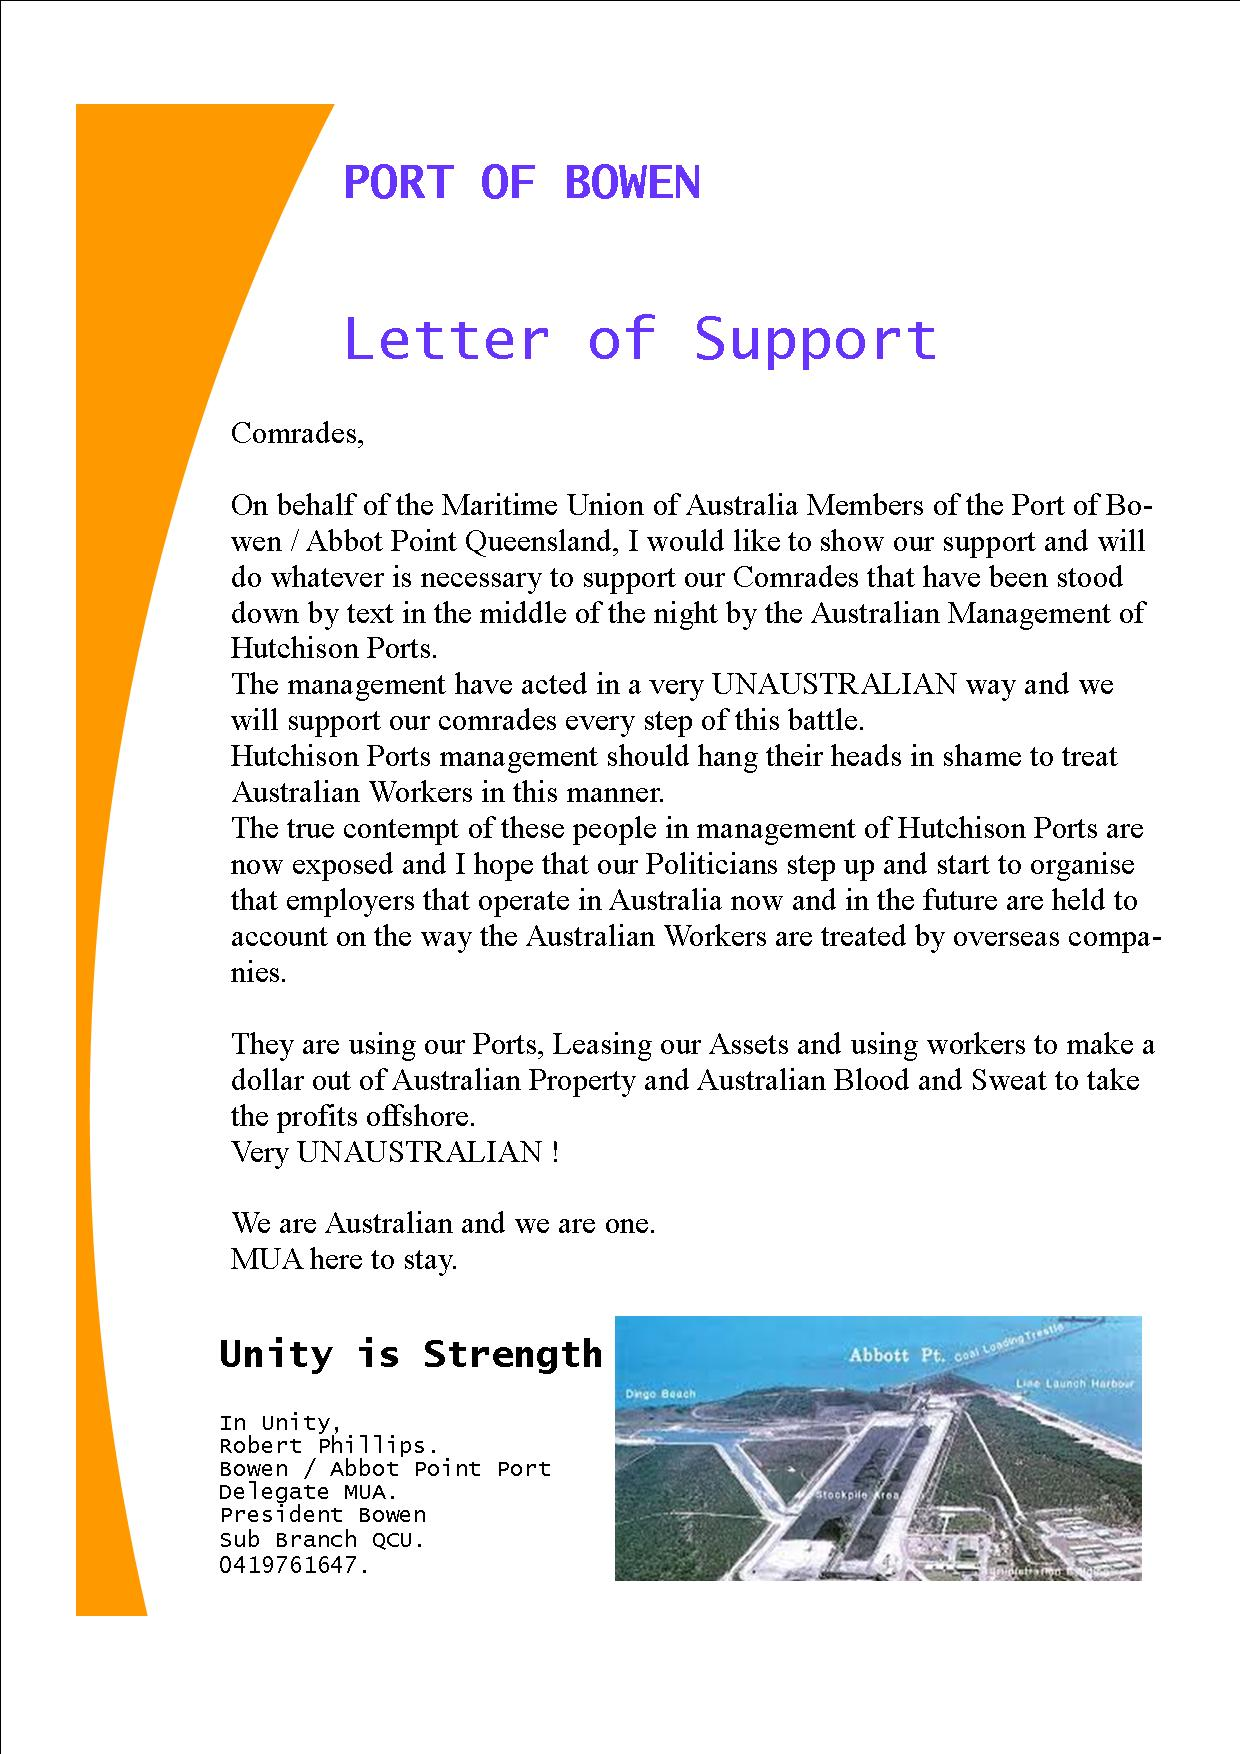 Port_of_Bowen_Letter_of_Support.jpg